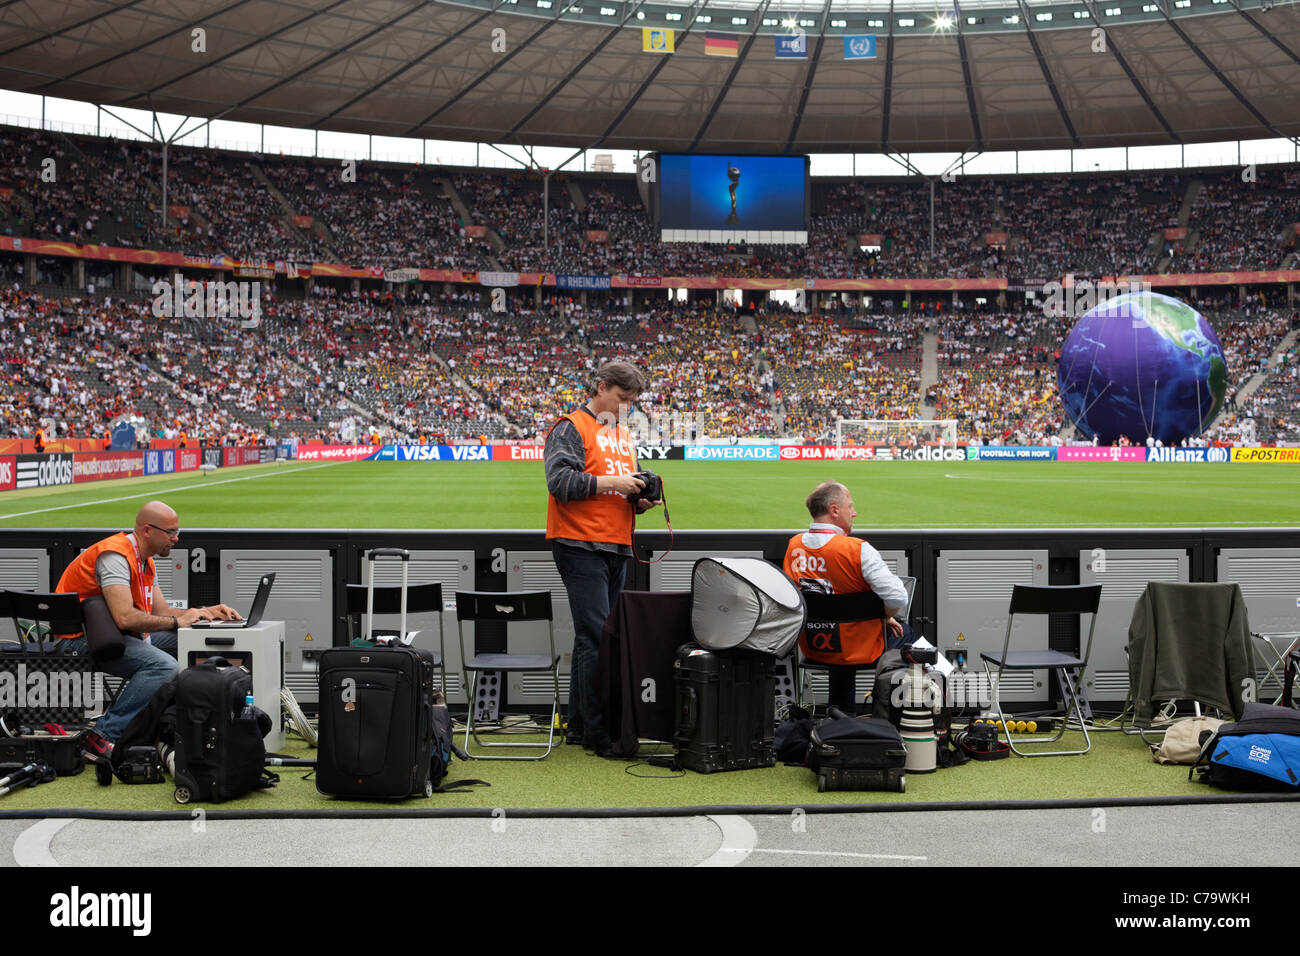 Photographers in shooting positions at Berlin's Olympic Stadium ahead of the opening match of the 2011 Women's - Stock Image